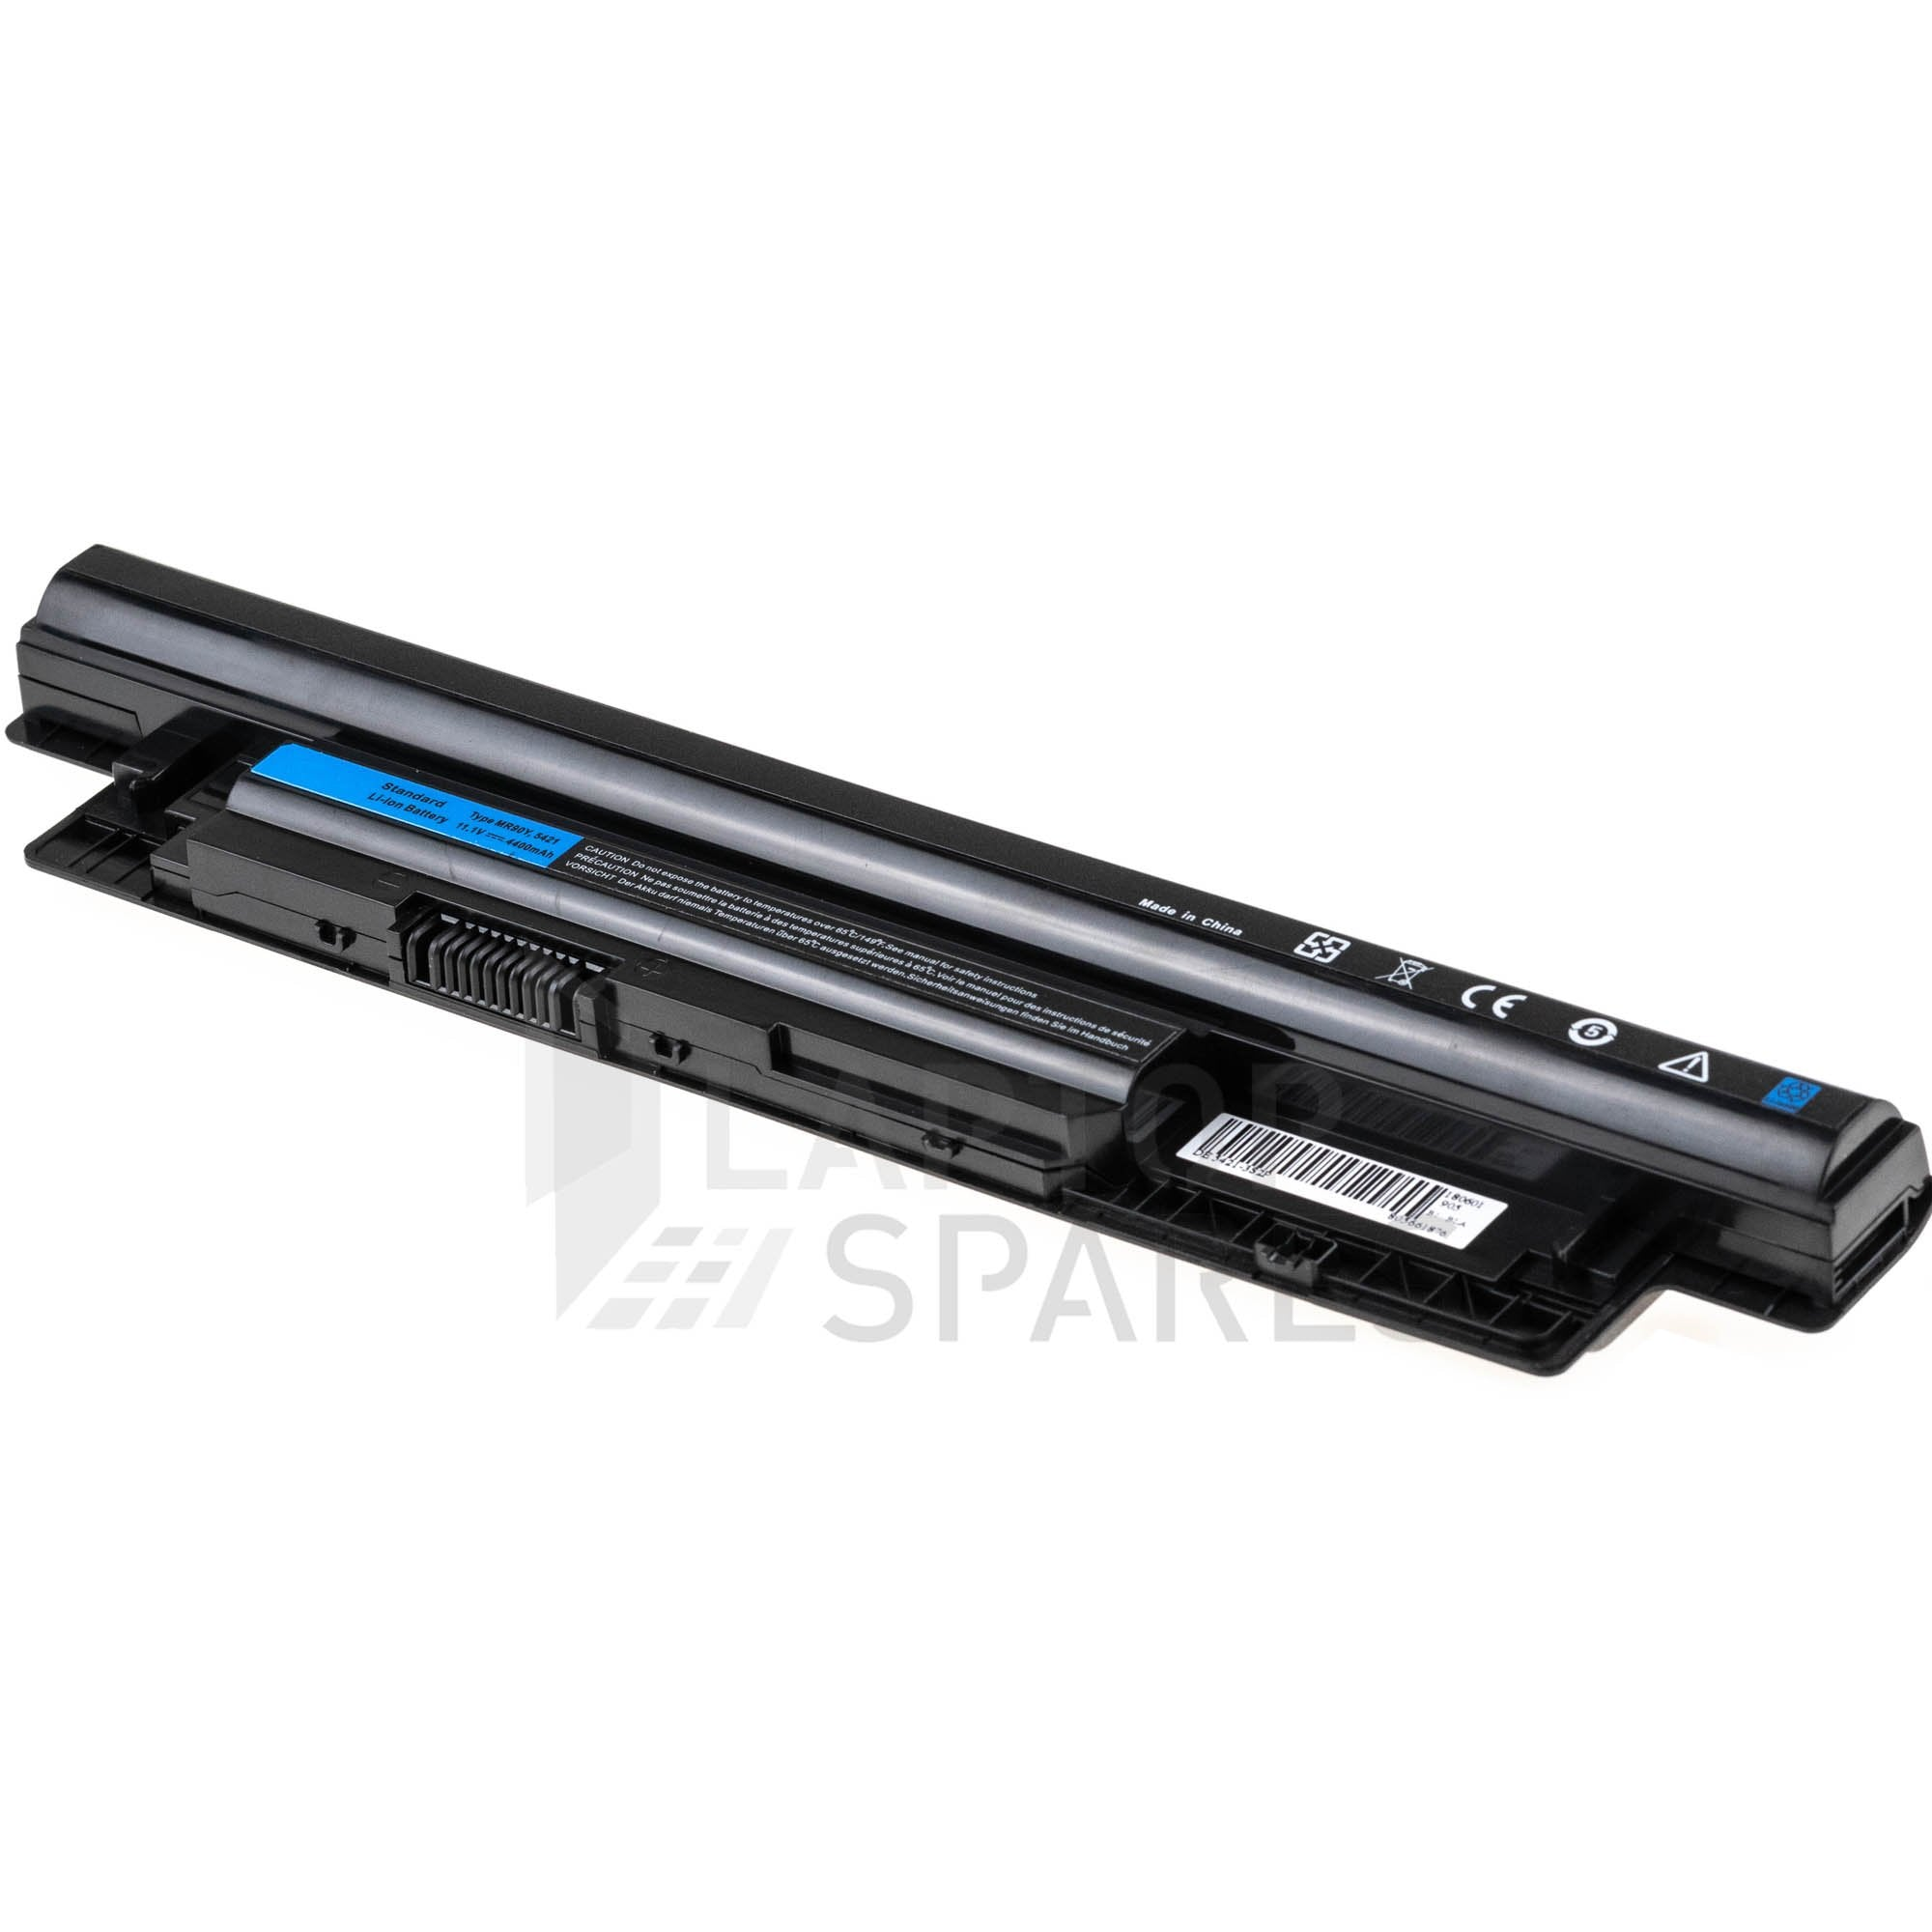 Dell Inspiron 14R N5421 N5437 4400mAh 6 Cell Battery